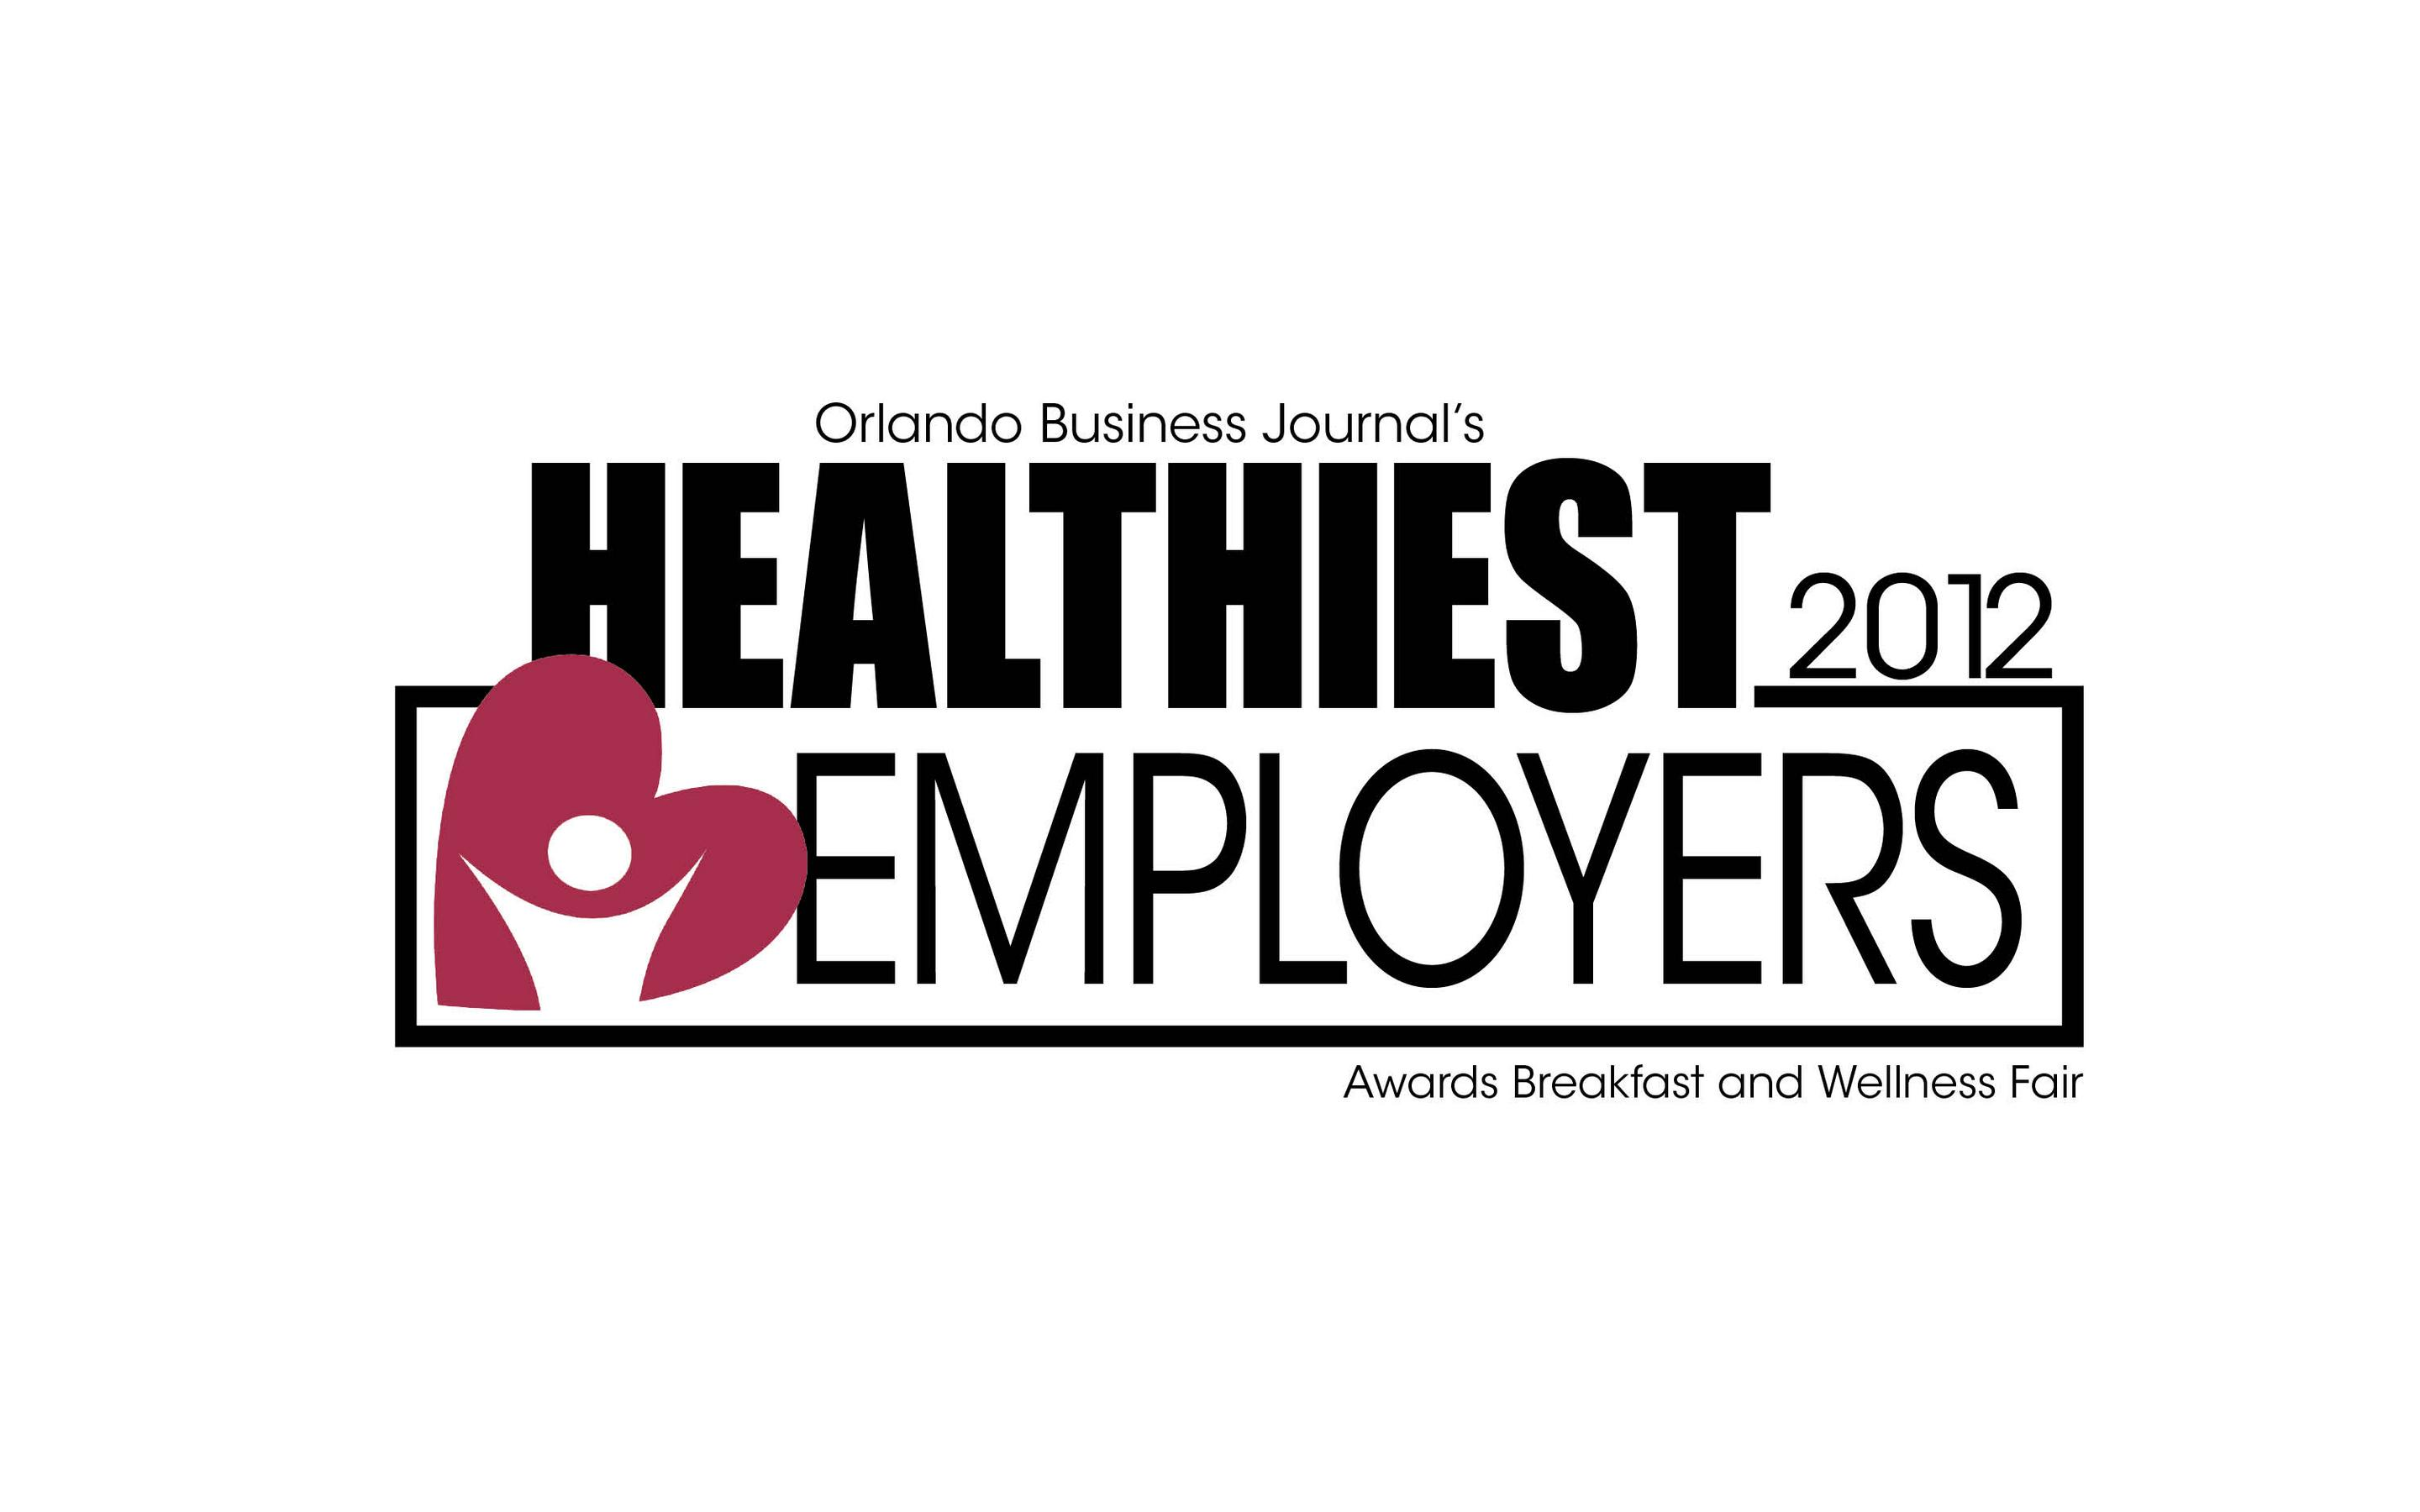 Central Florida's Healthiest Employers